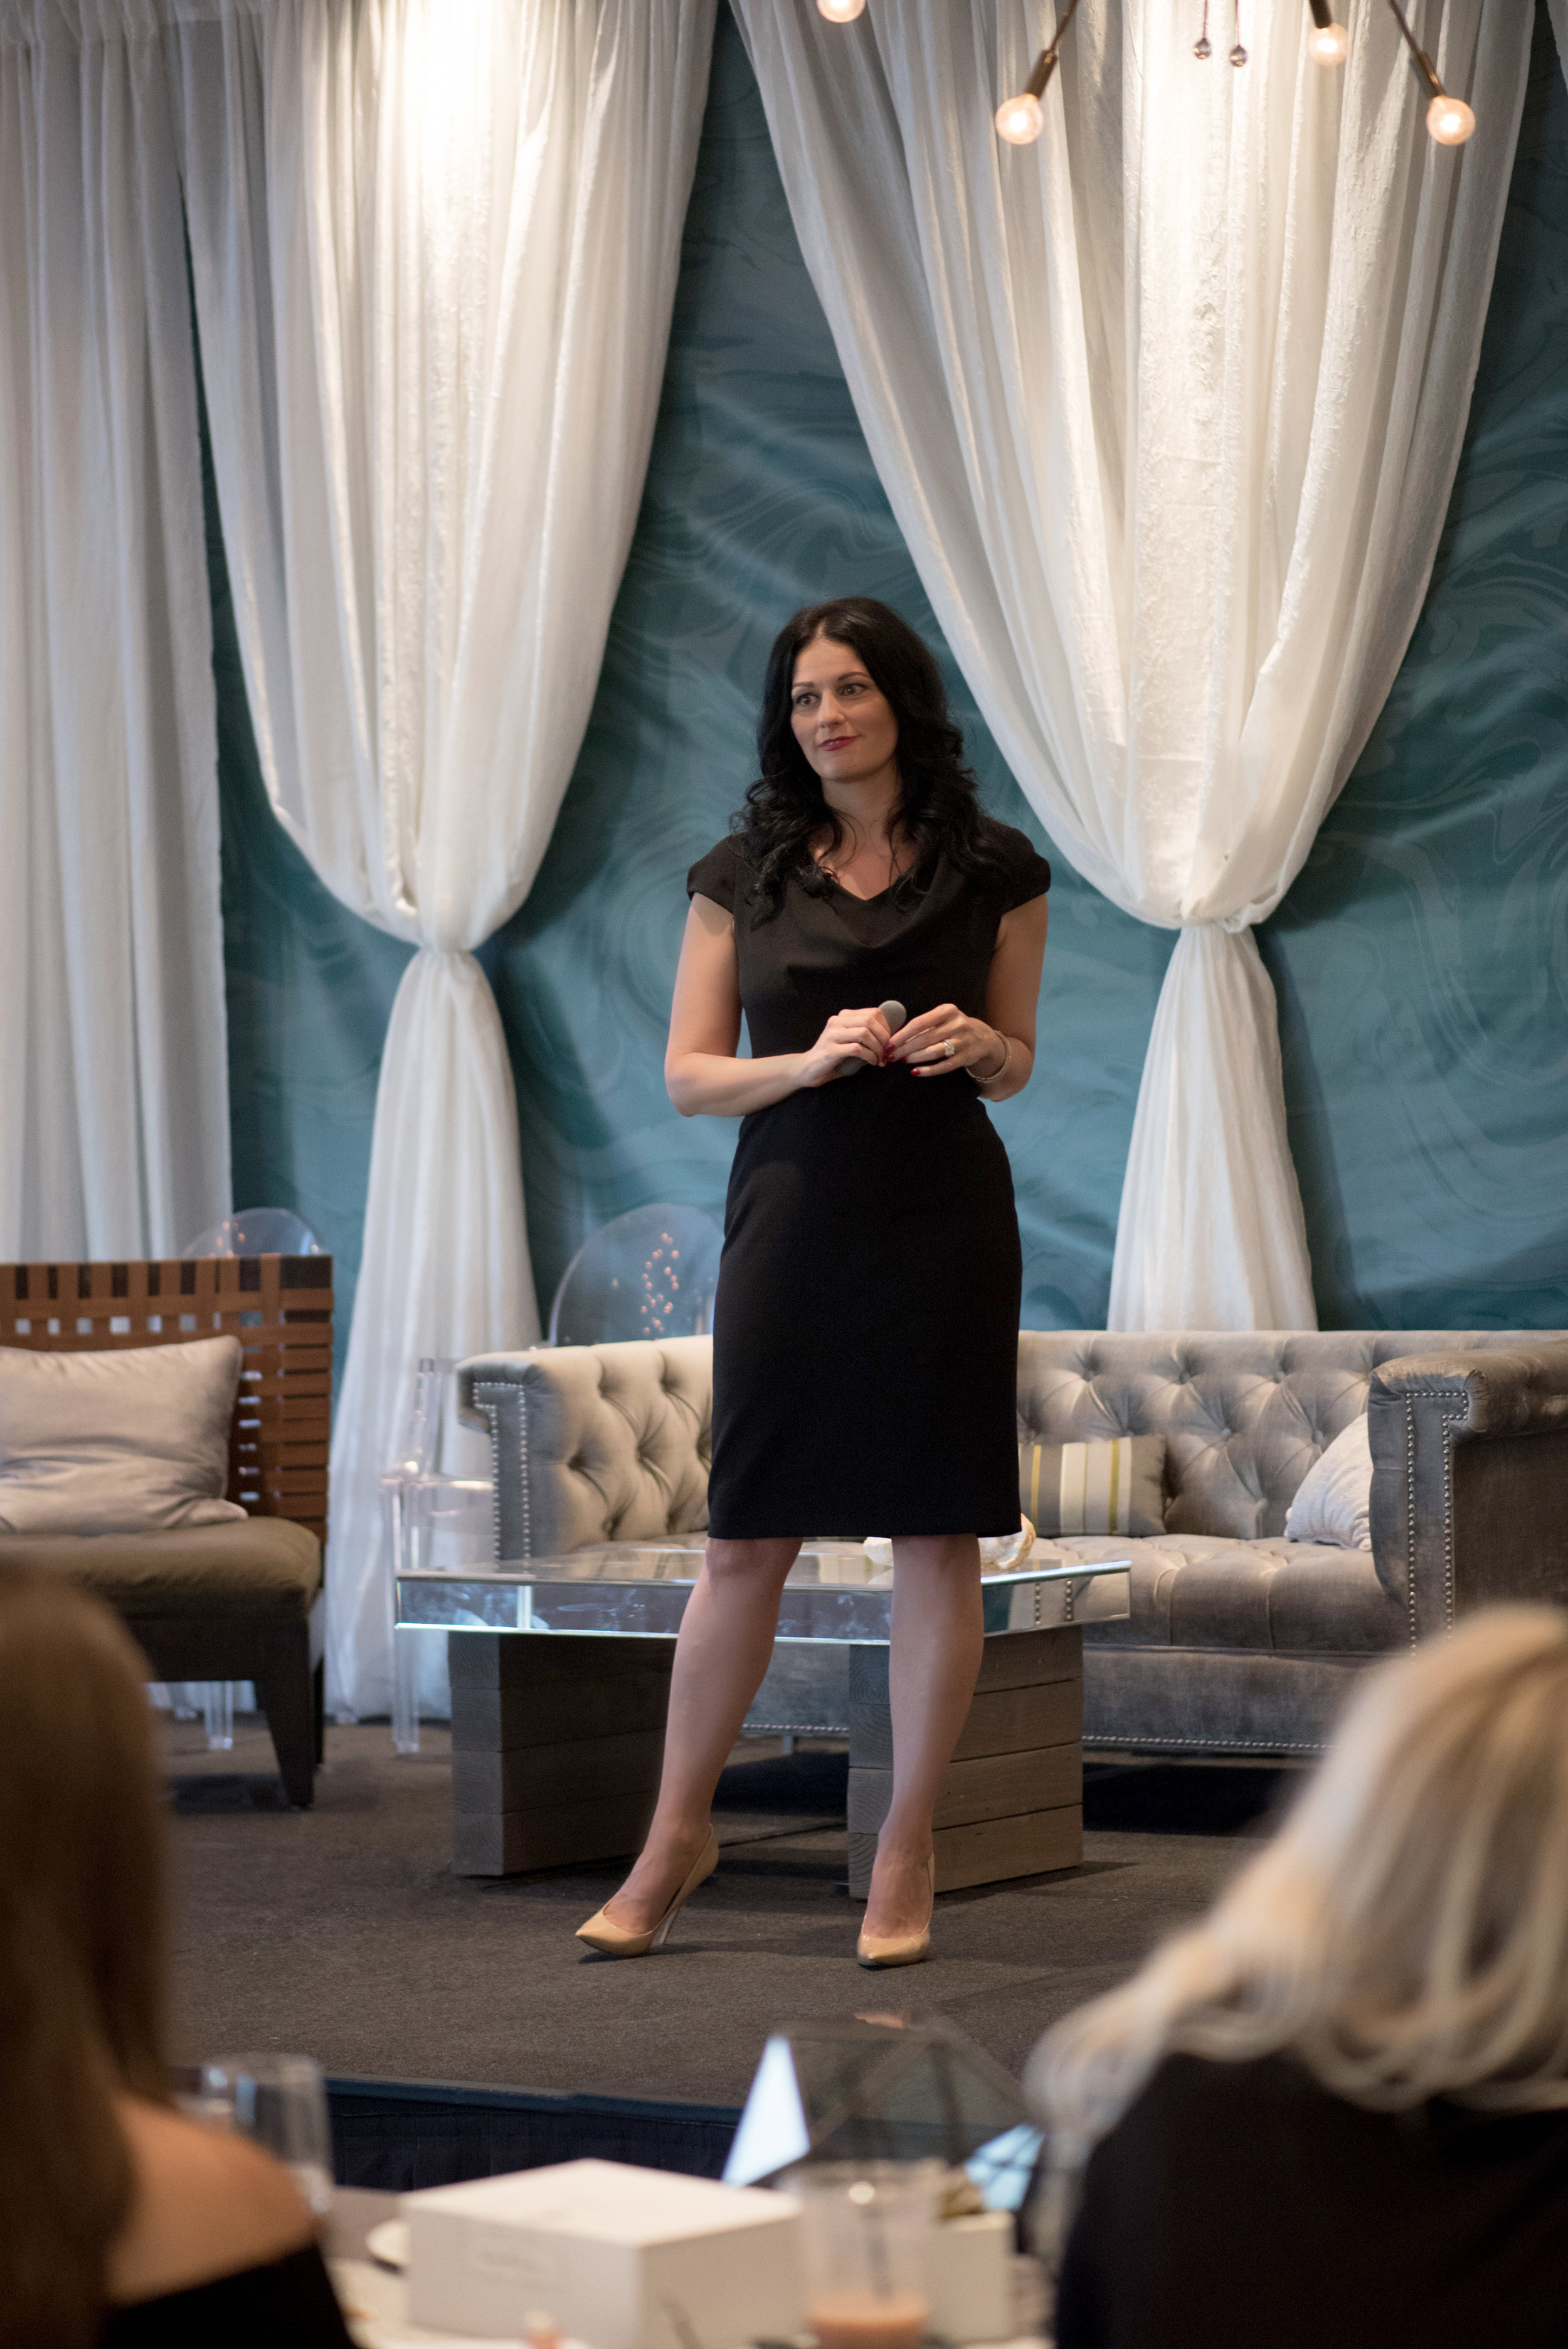 Luxury Wedding Planner Andrea Eppolito speaking at The Balance Reverie Retreat. Photo by Cameron Kelly Studio.